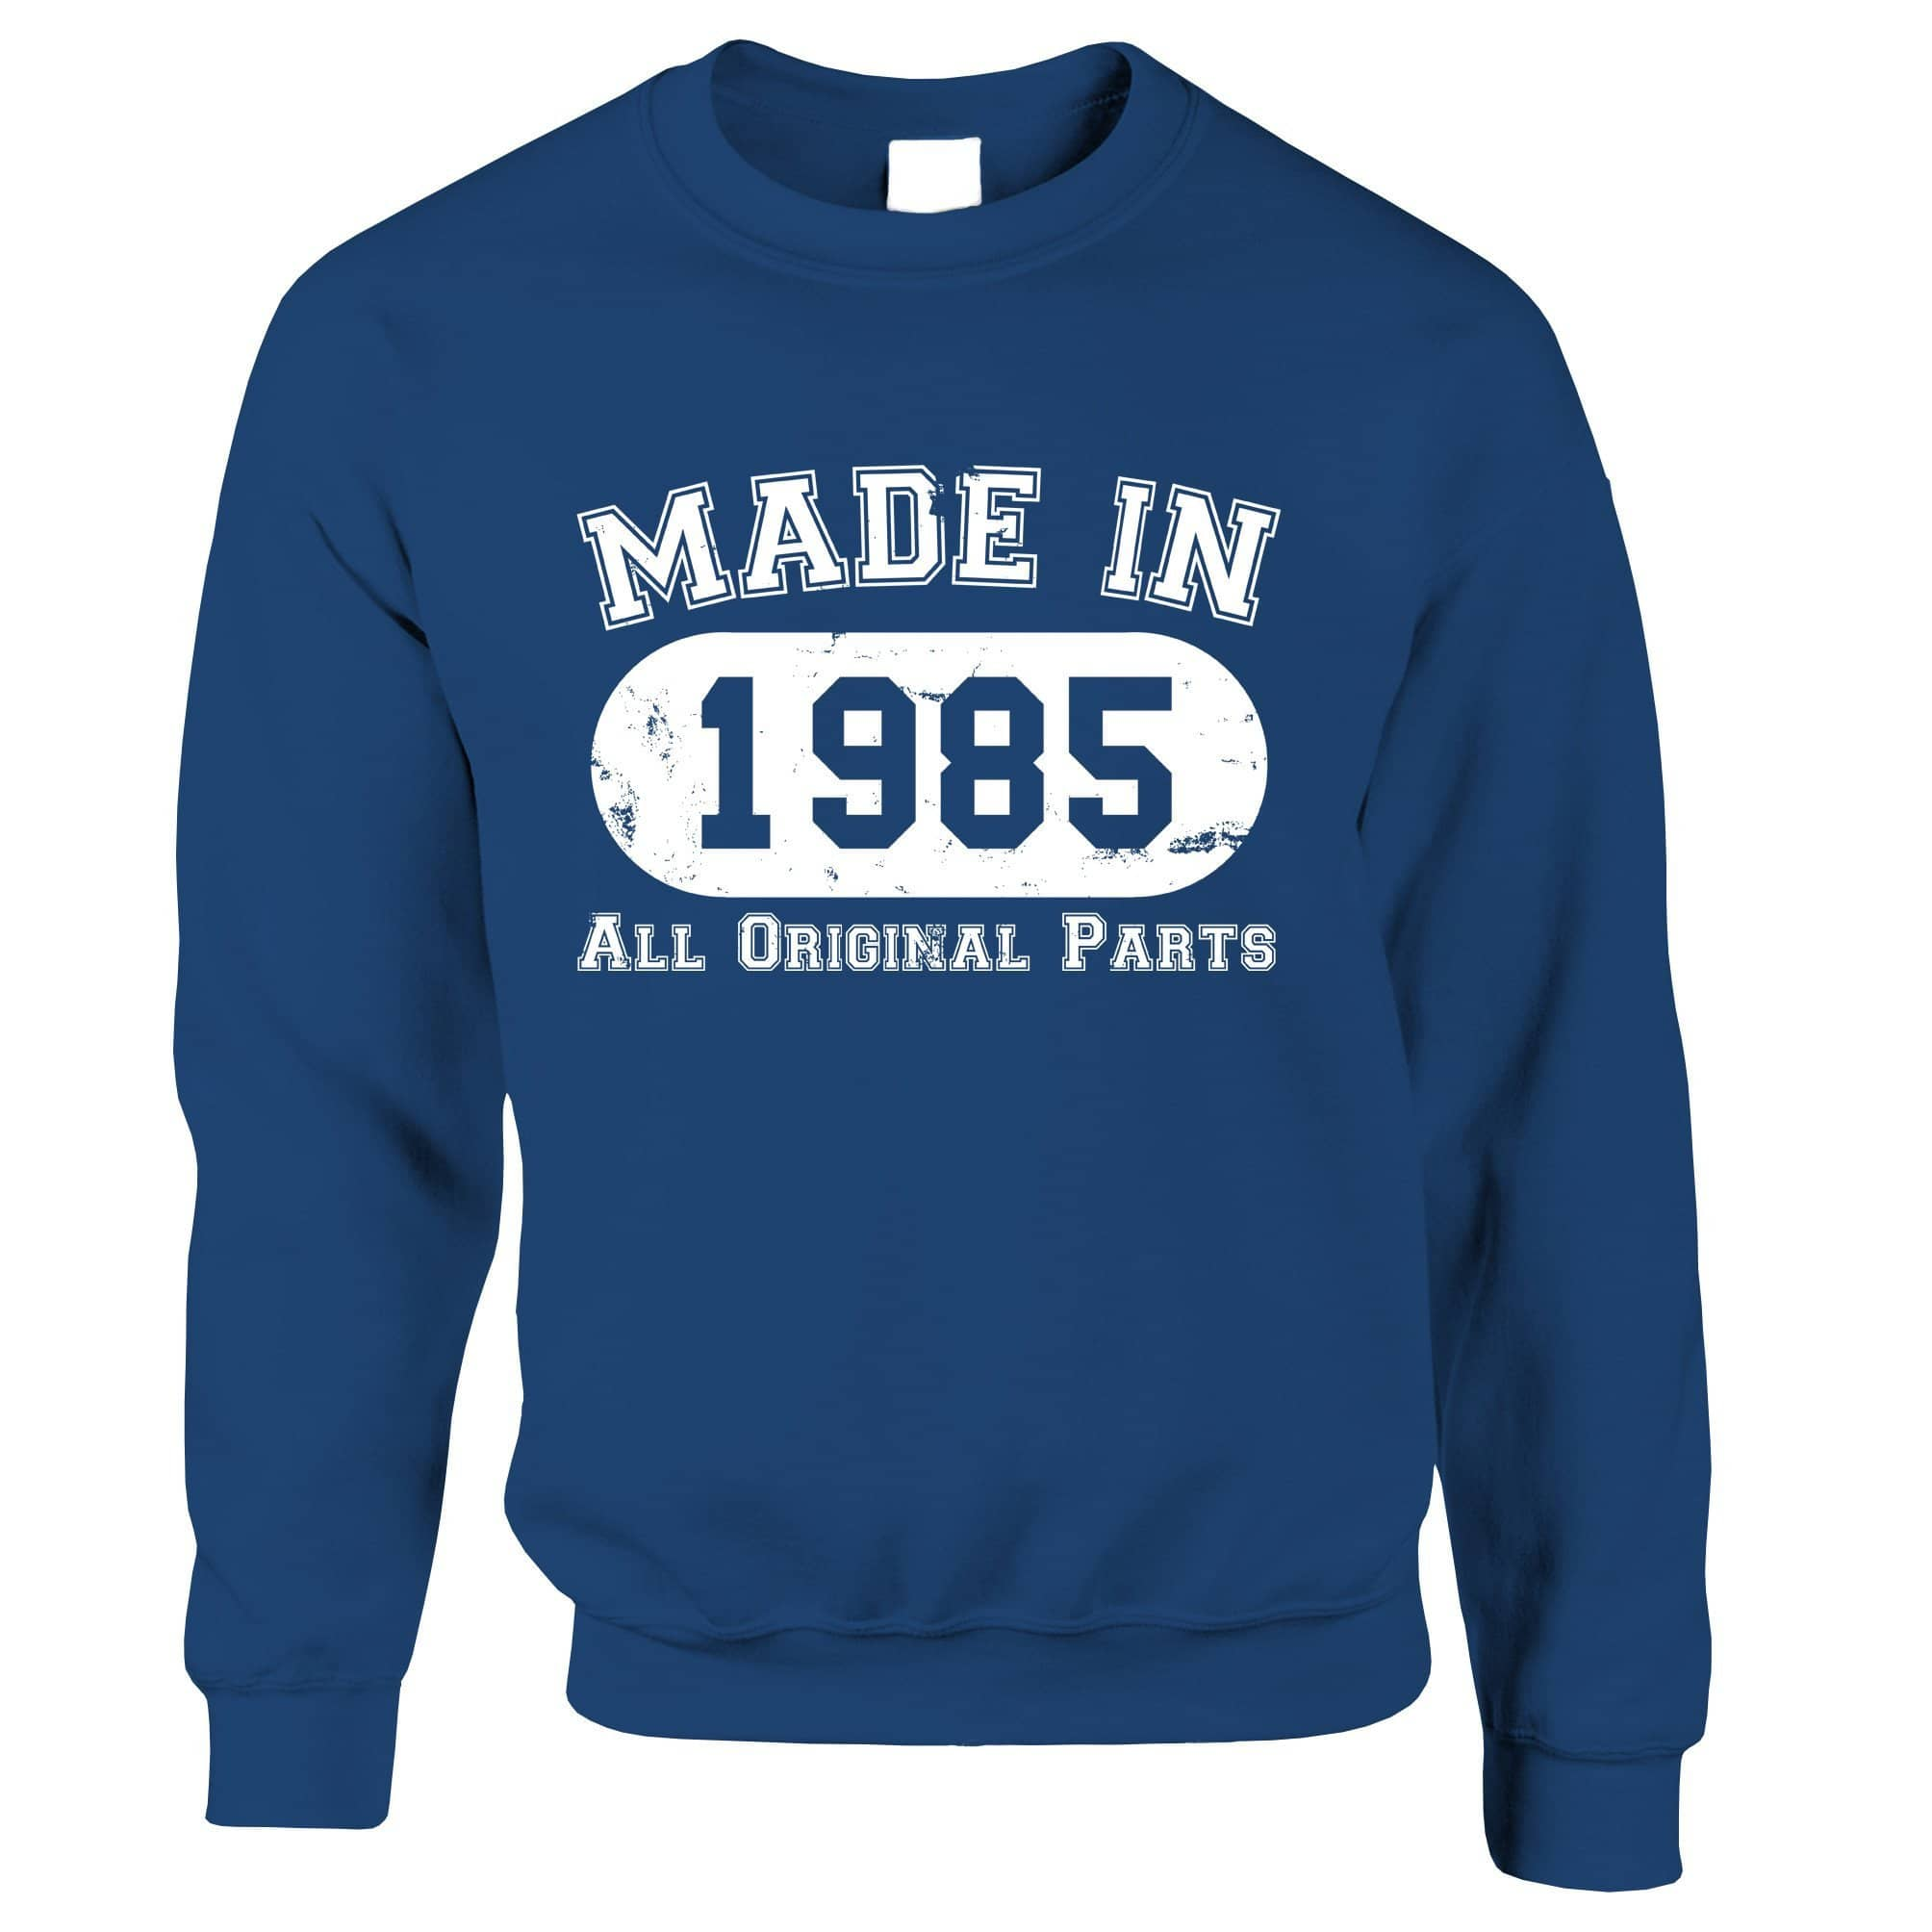 Made in 1985 All Original Parts Sweatshirt Jumper [Distressed]